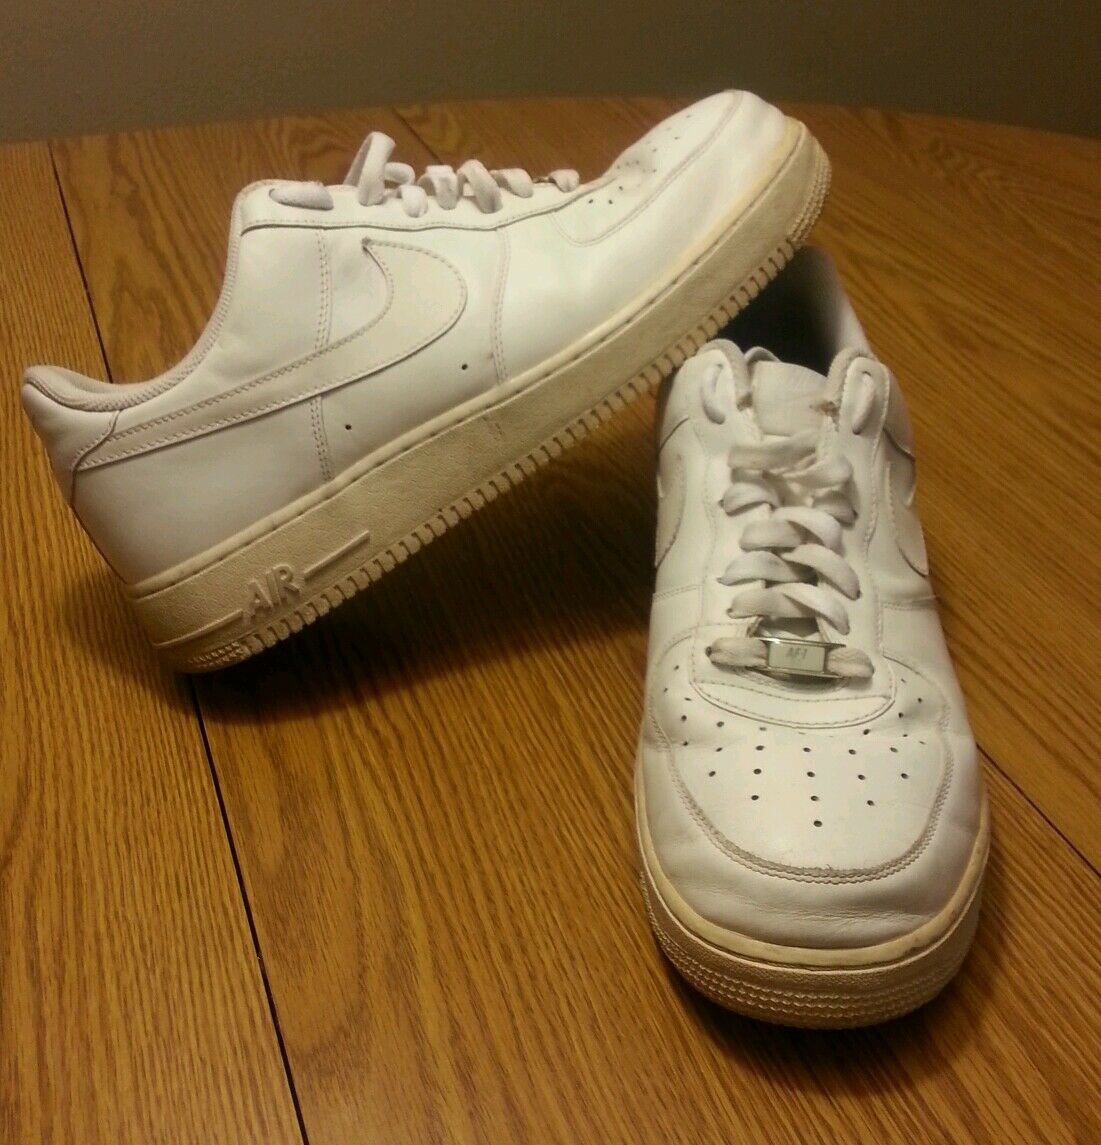 Nike mens air force one low all white 315122-111 platinum size 11.5 triple Special limited time